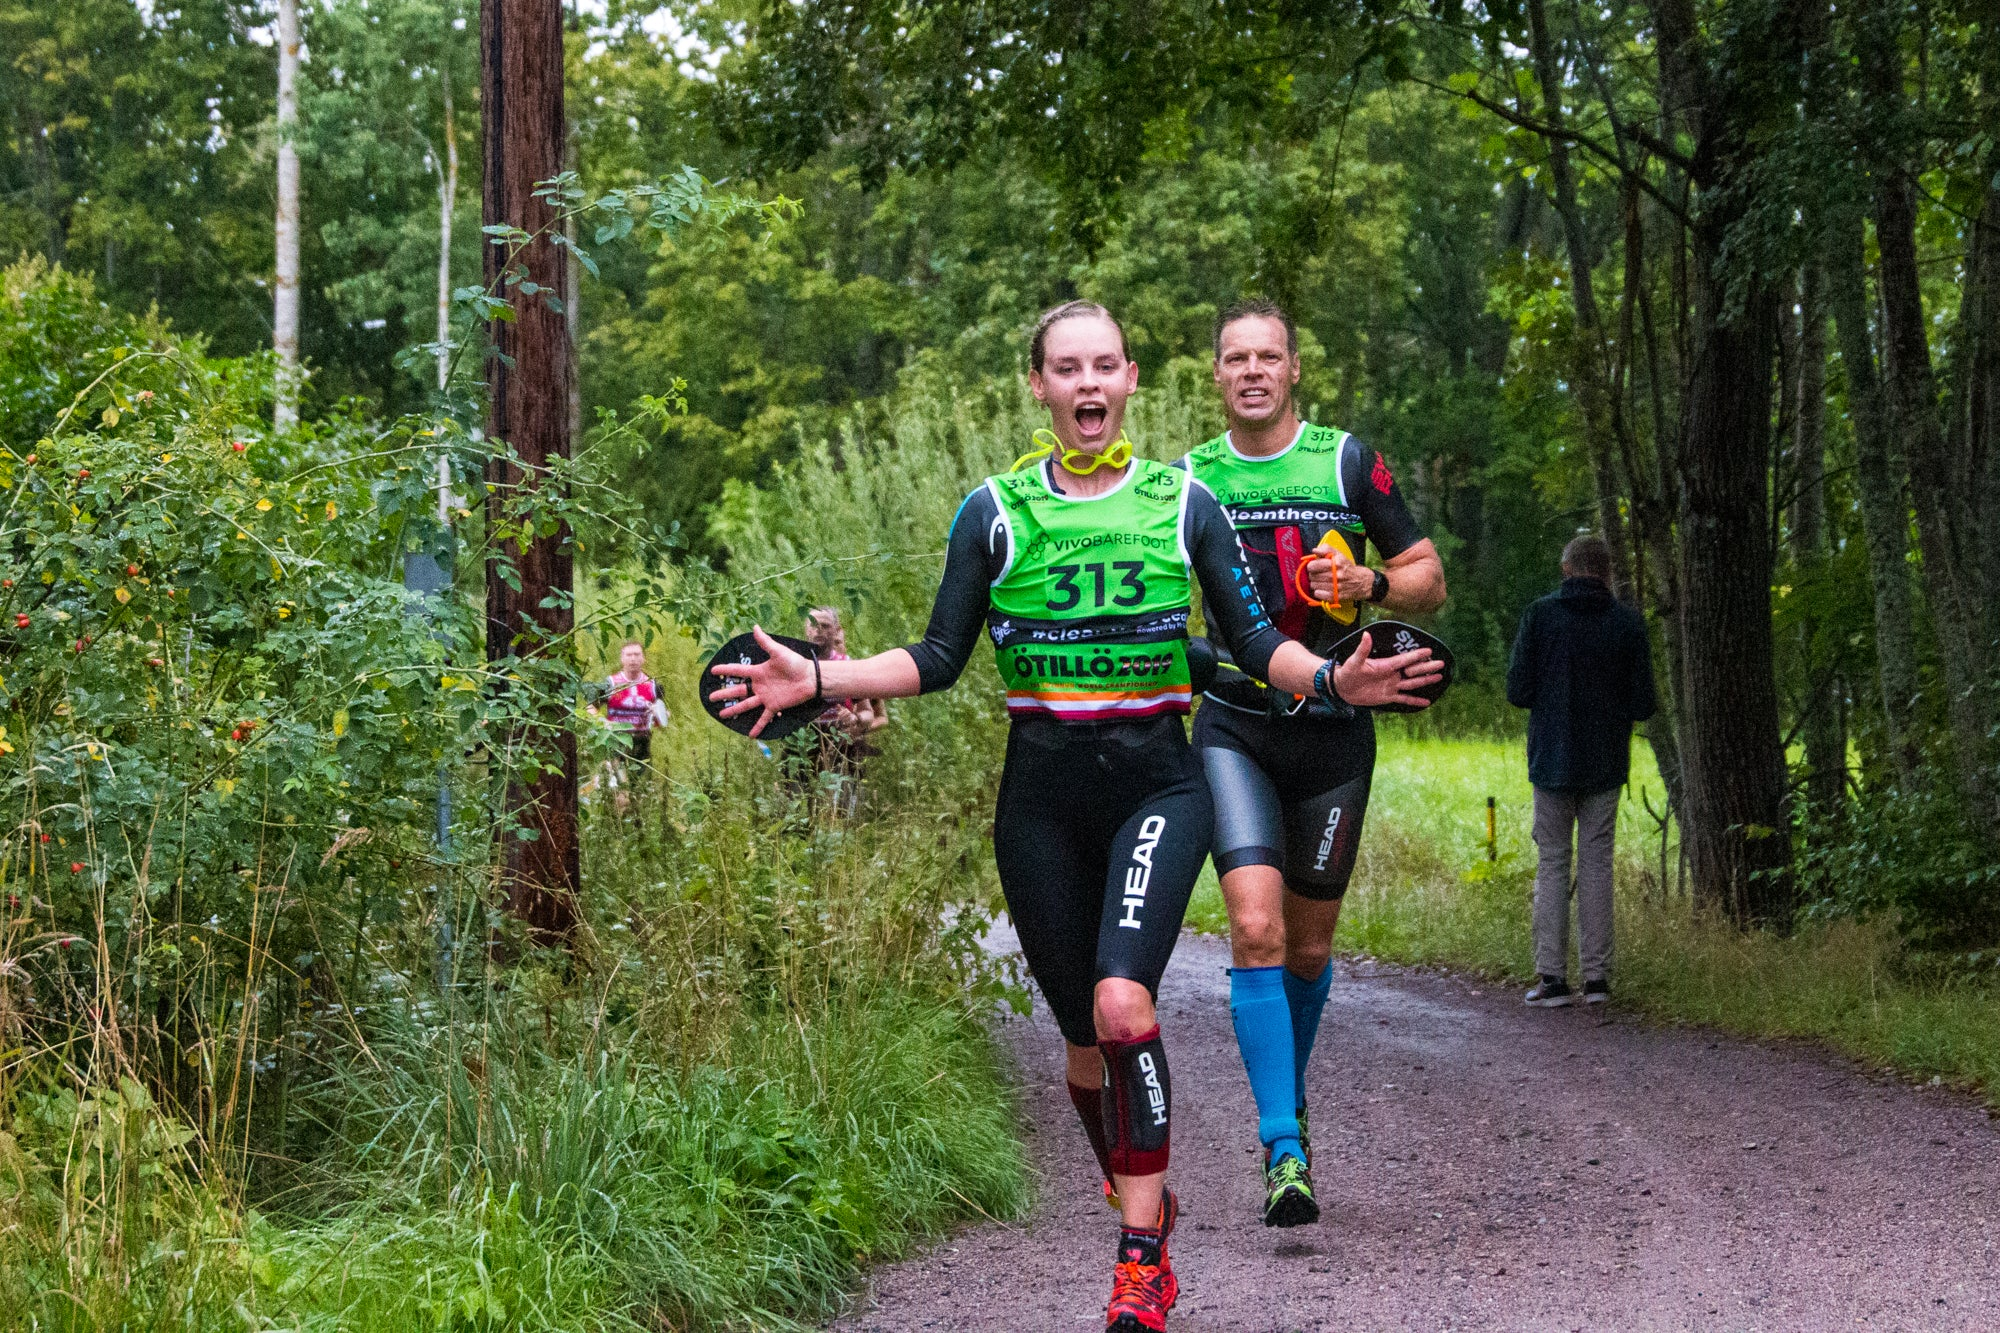 Teams arriving at an energy station - ÖTILLÖ Swimrun World Championship 2019